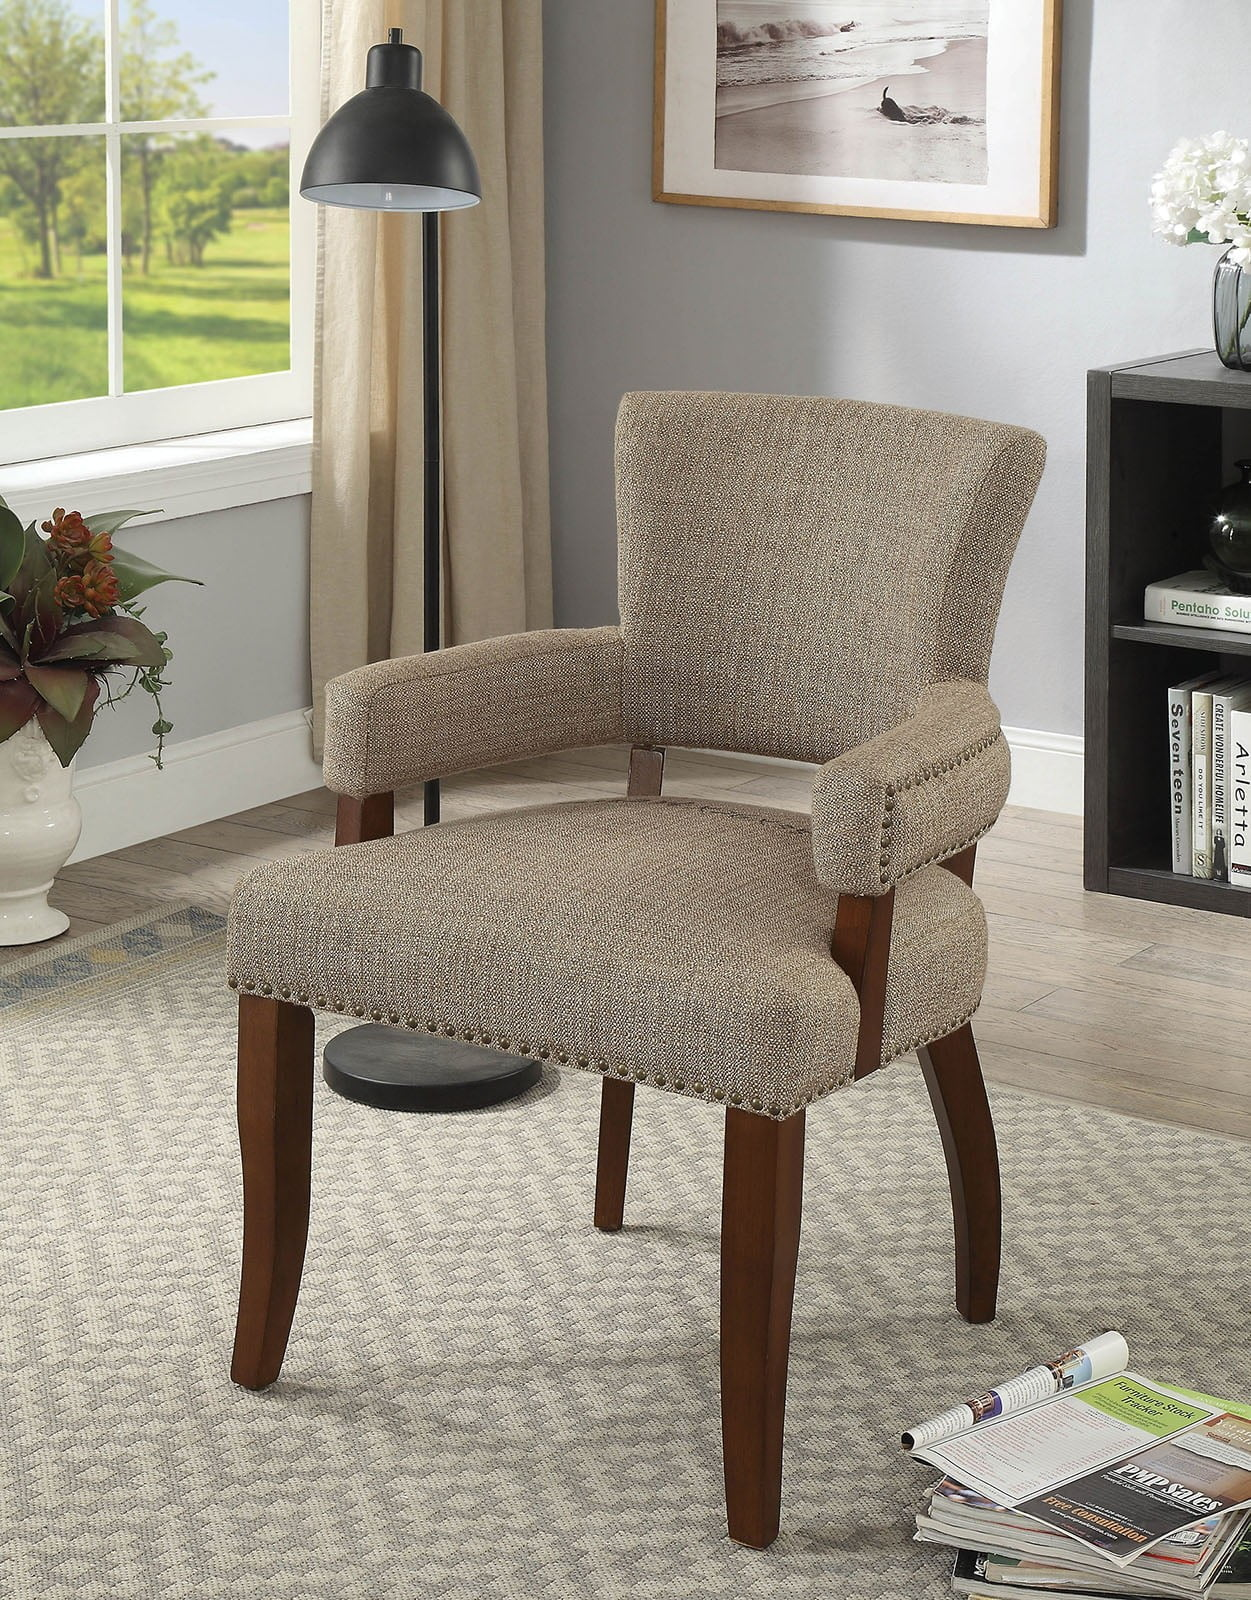 Valladolid Light Brown Bar Chair From Furniture Of America  # Muebles Low Cost Valladolid